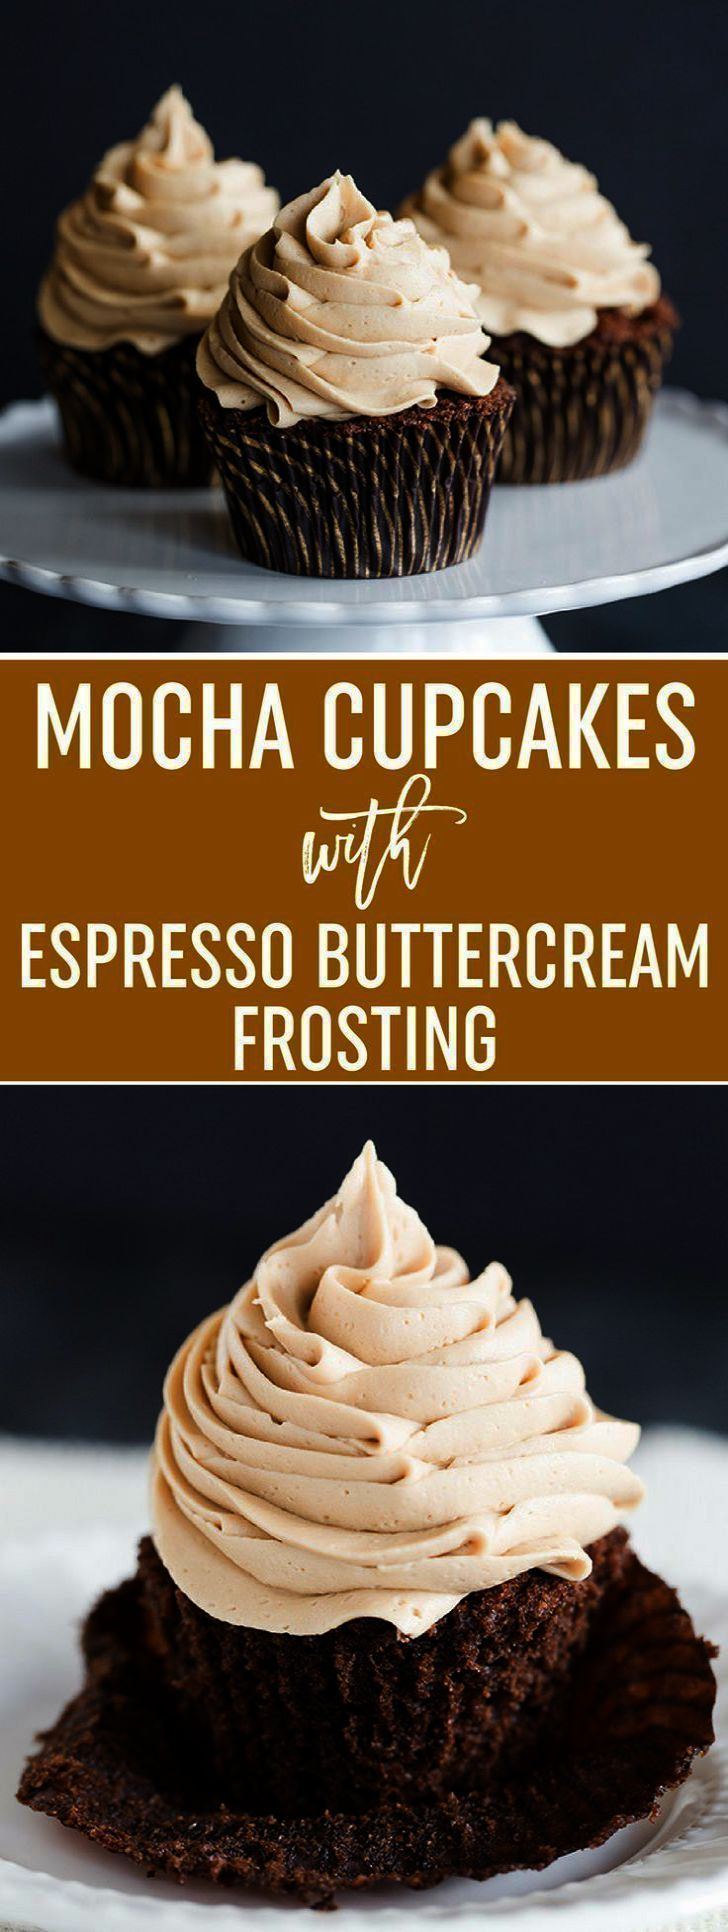 Make And Enjoy A Delicious Cup Of Coffee Desserts, Mocha